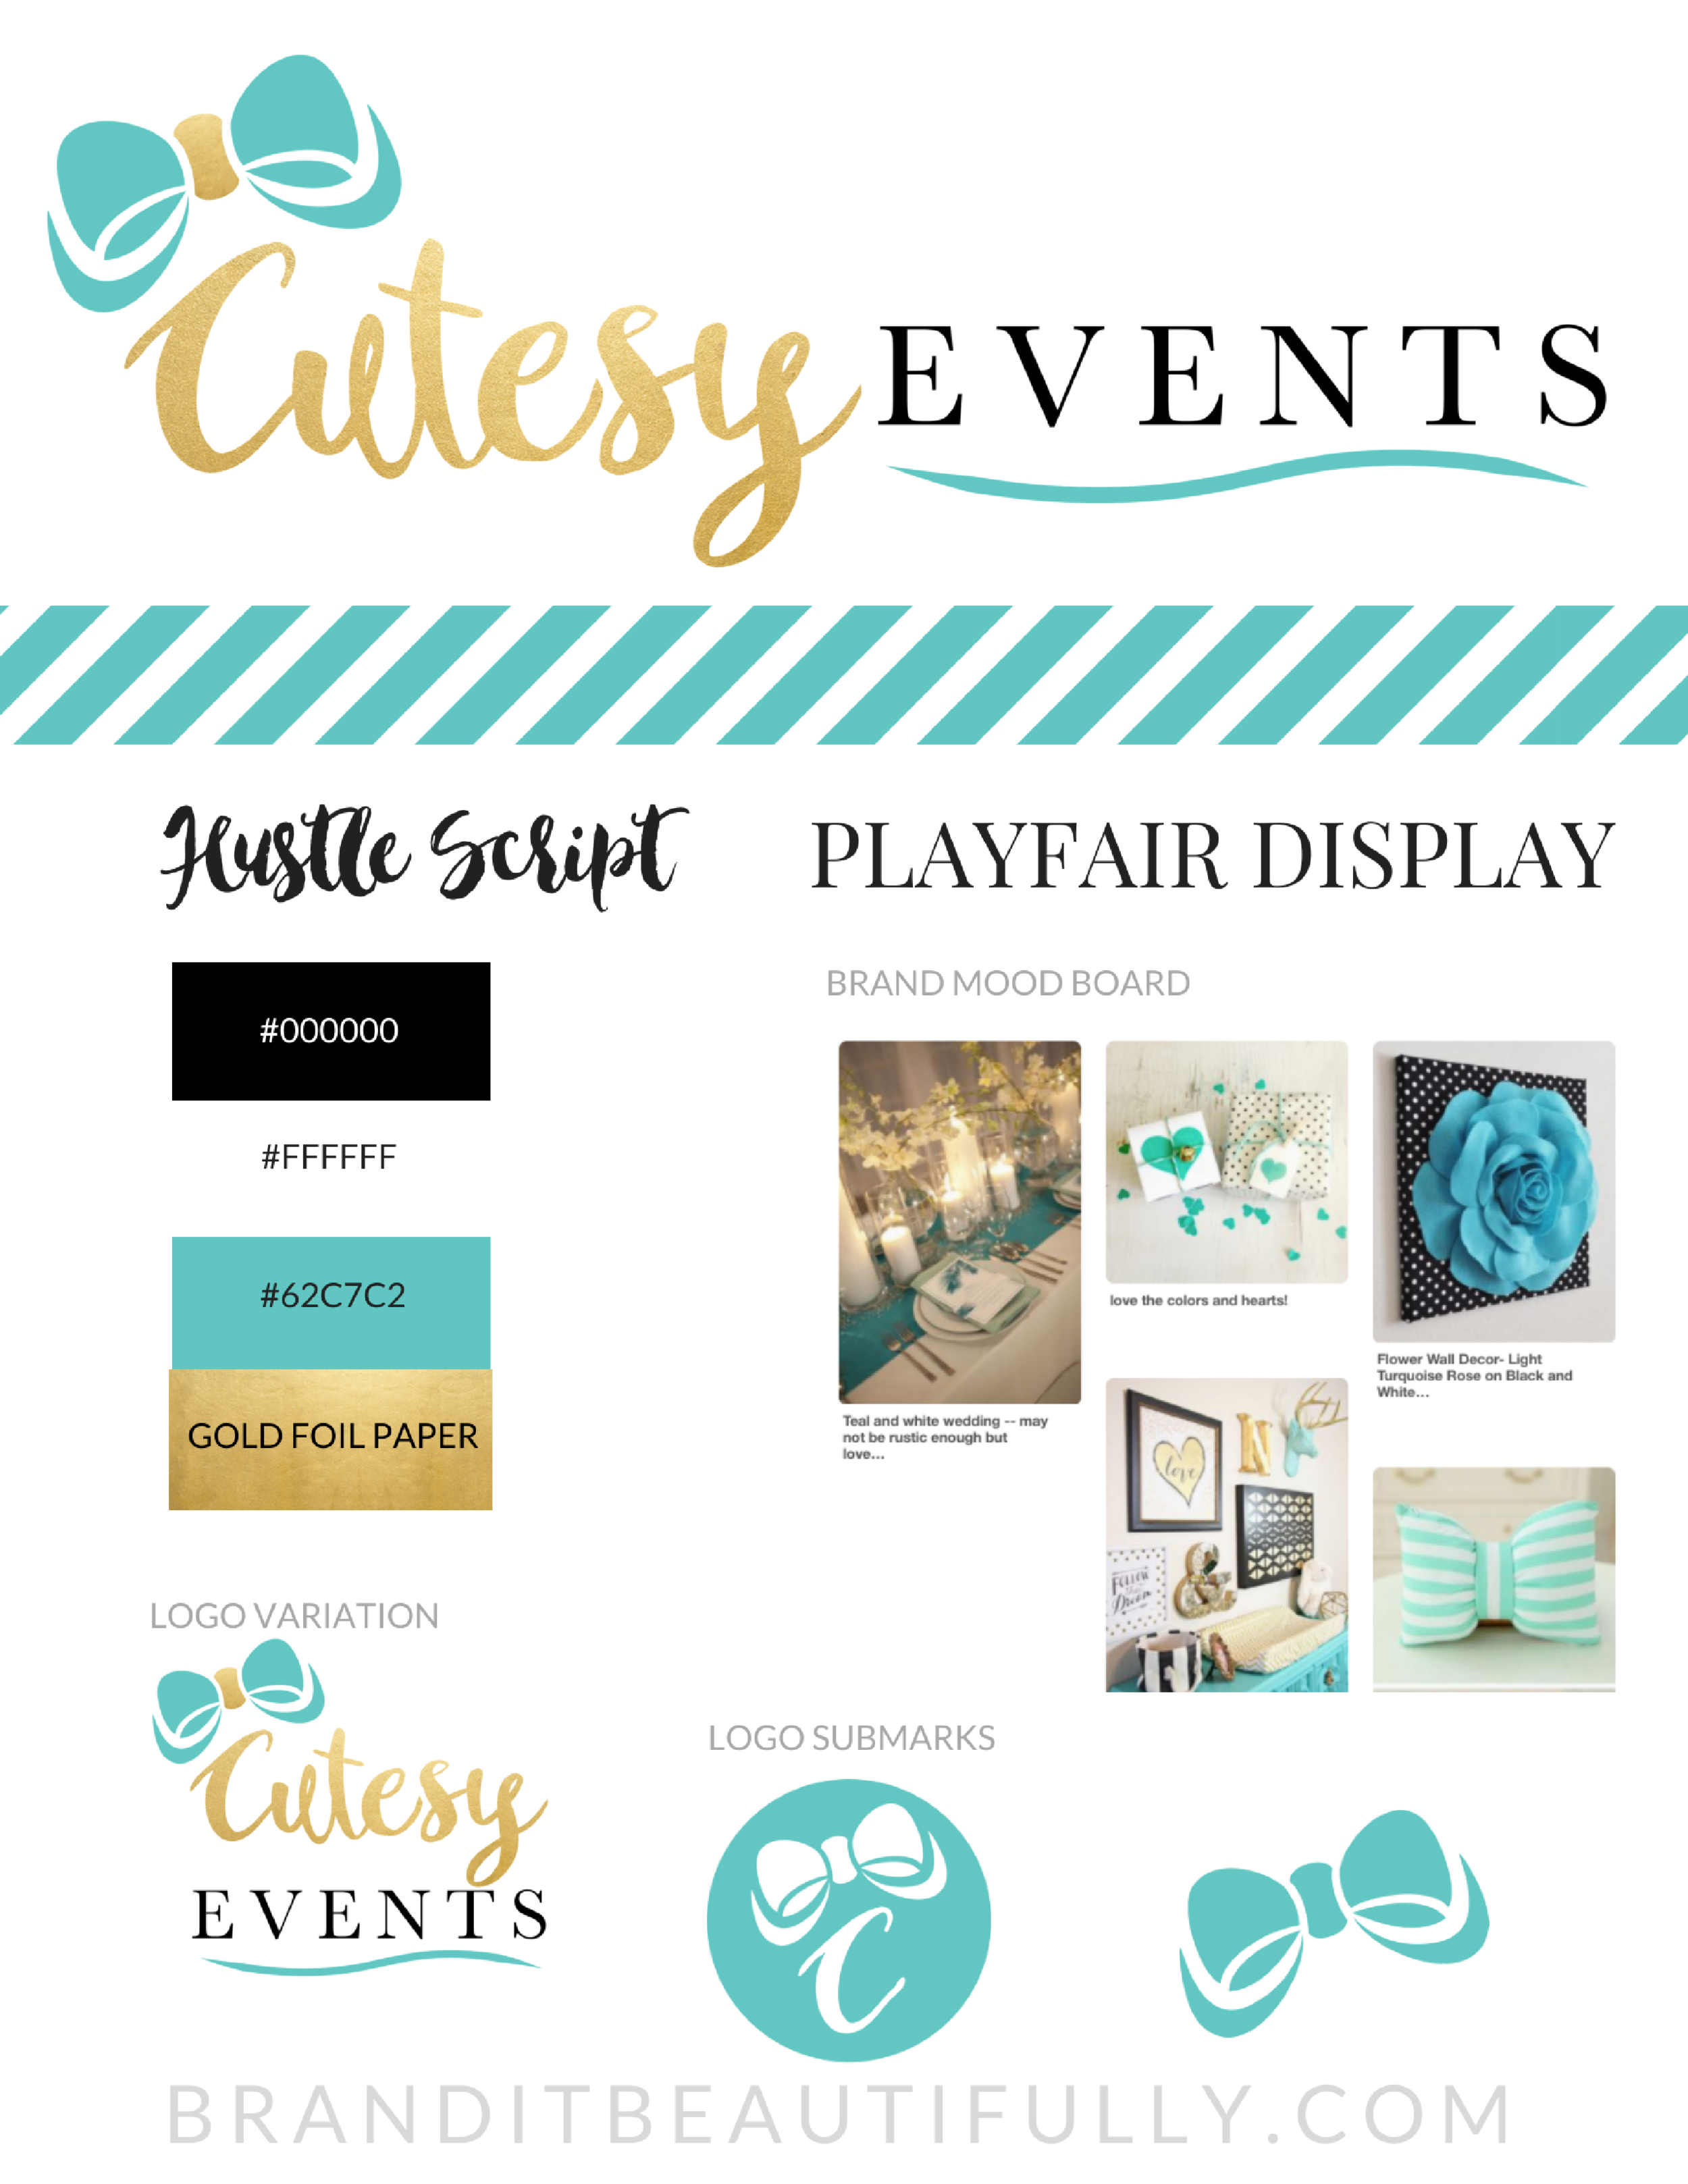 Cutesy Events Brand Board.png